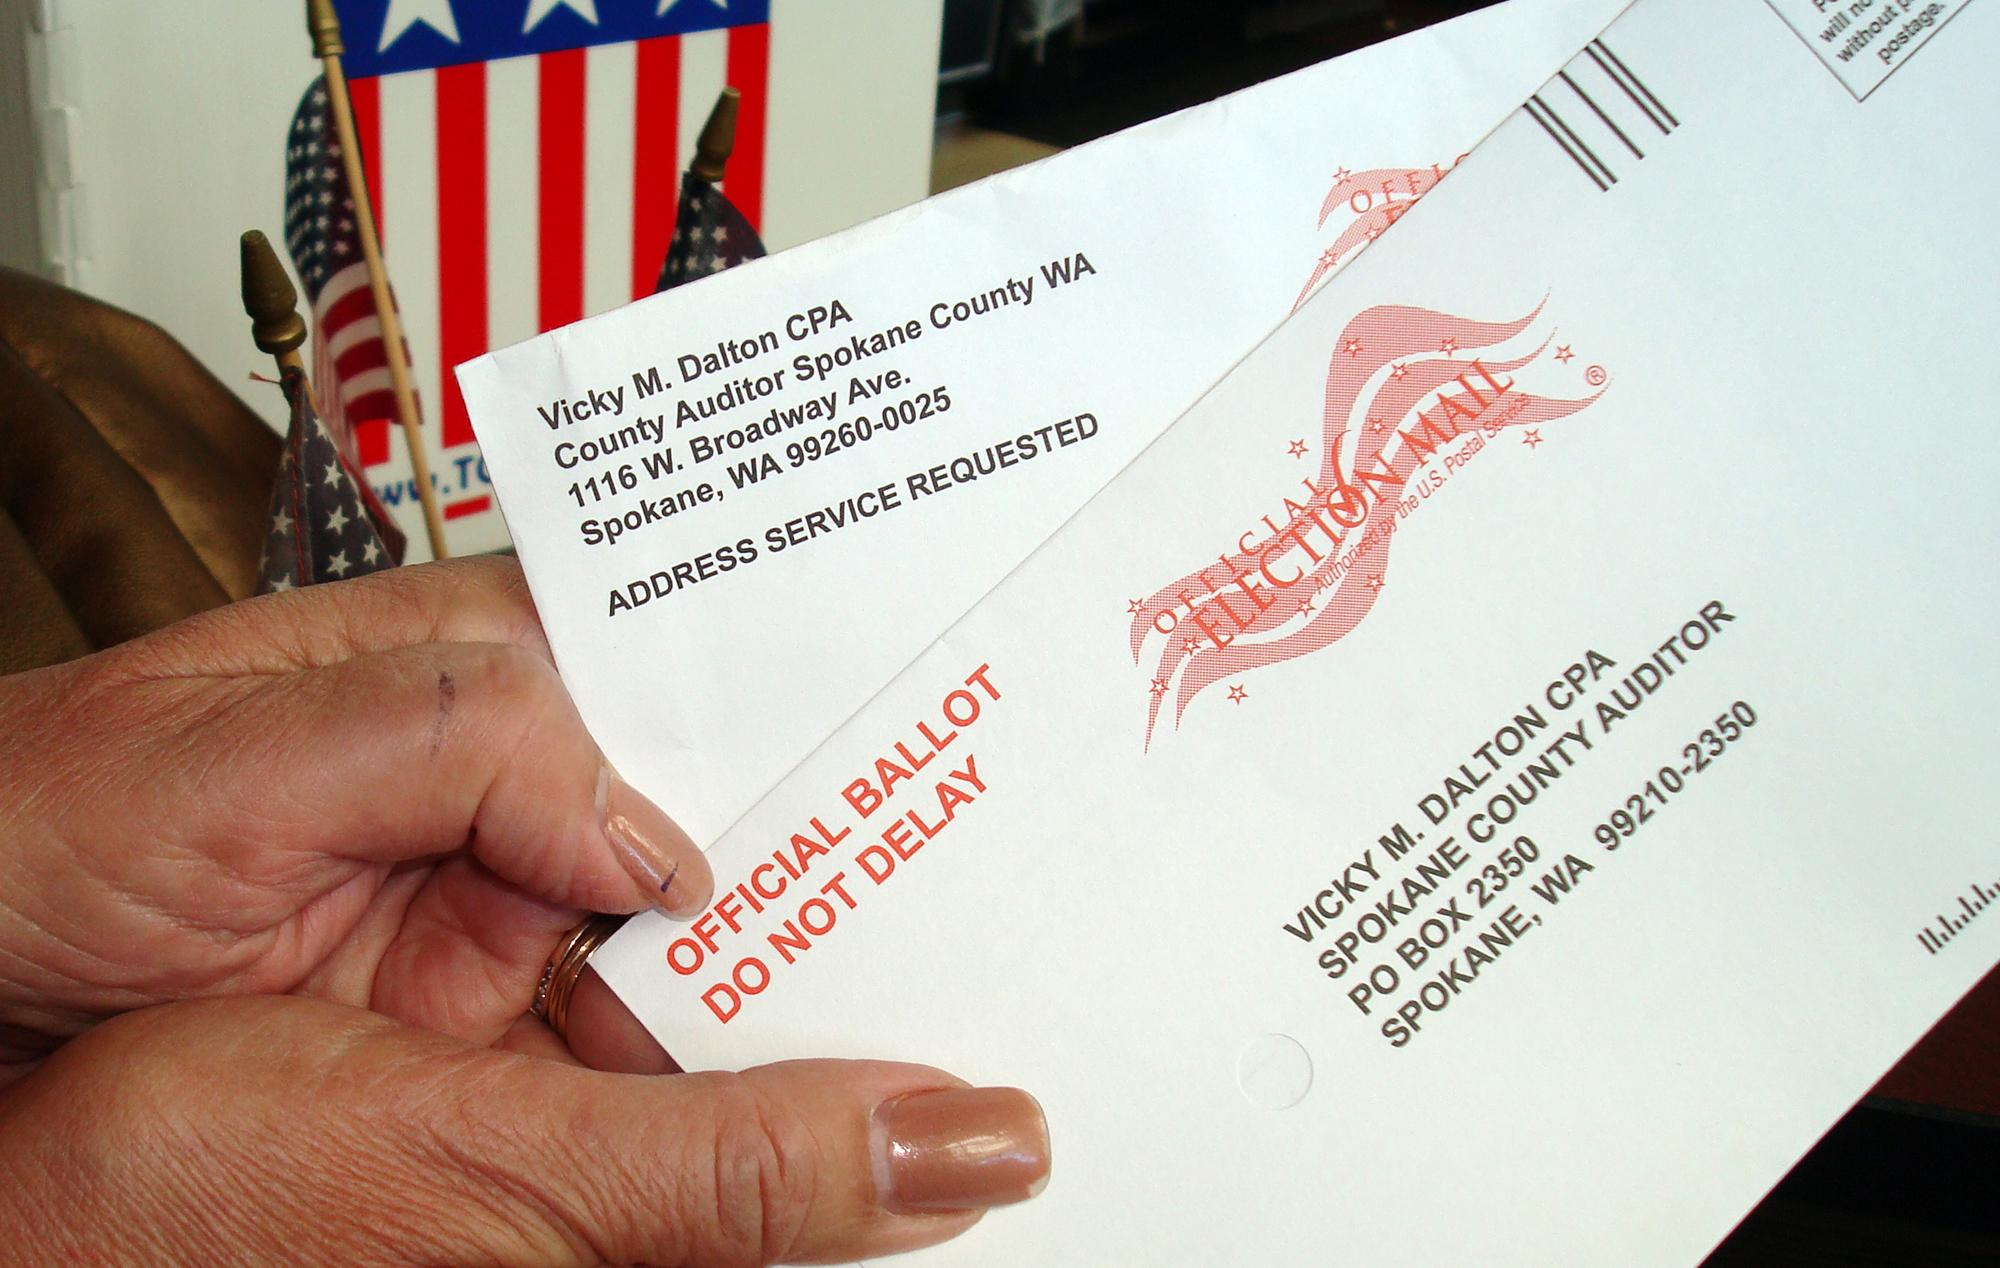 Cindy Zapotocky Then Chairwoman Of The Spokane County Republican Party Shows Ballot Envelopes